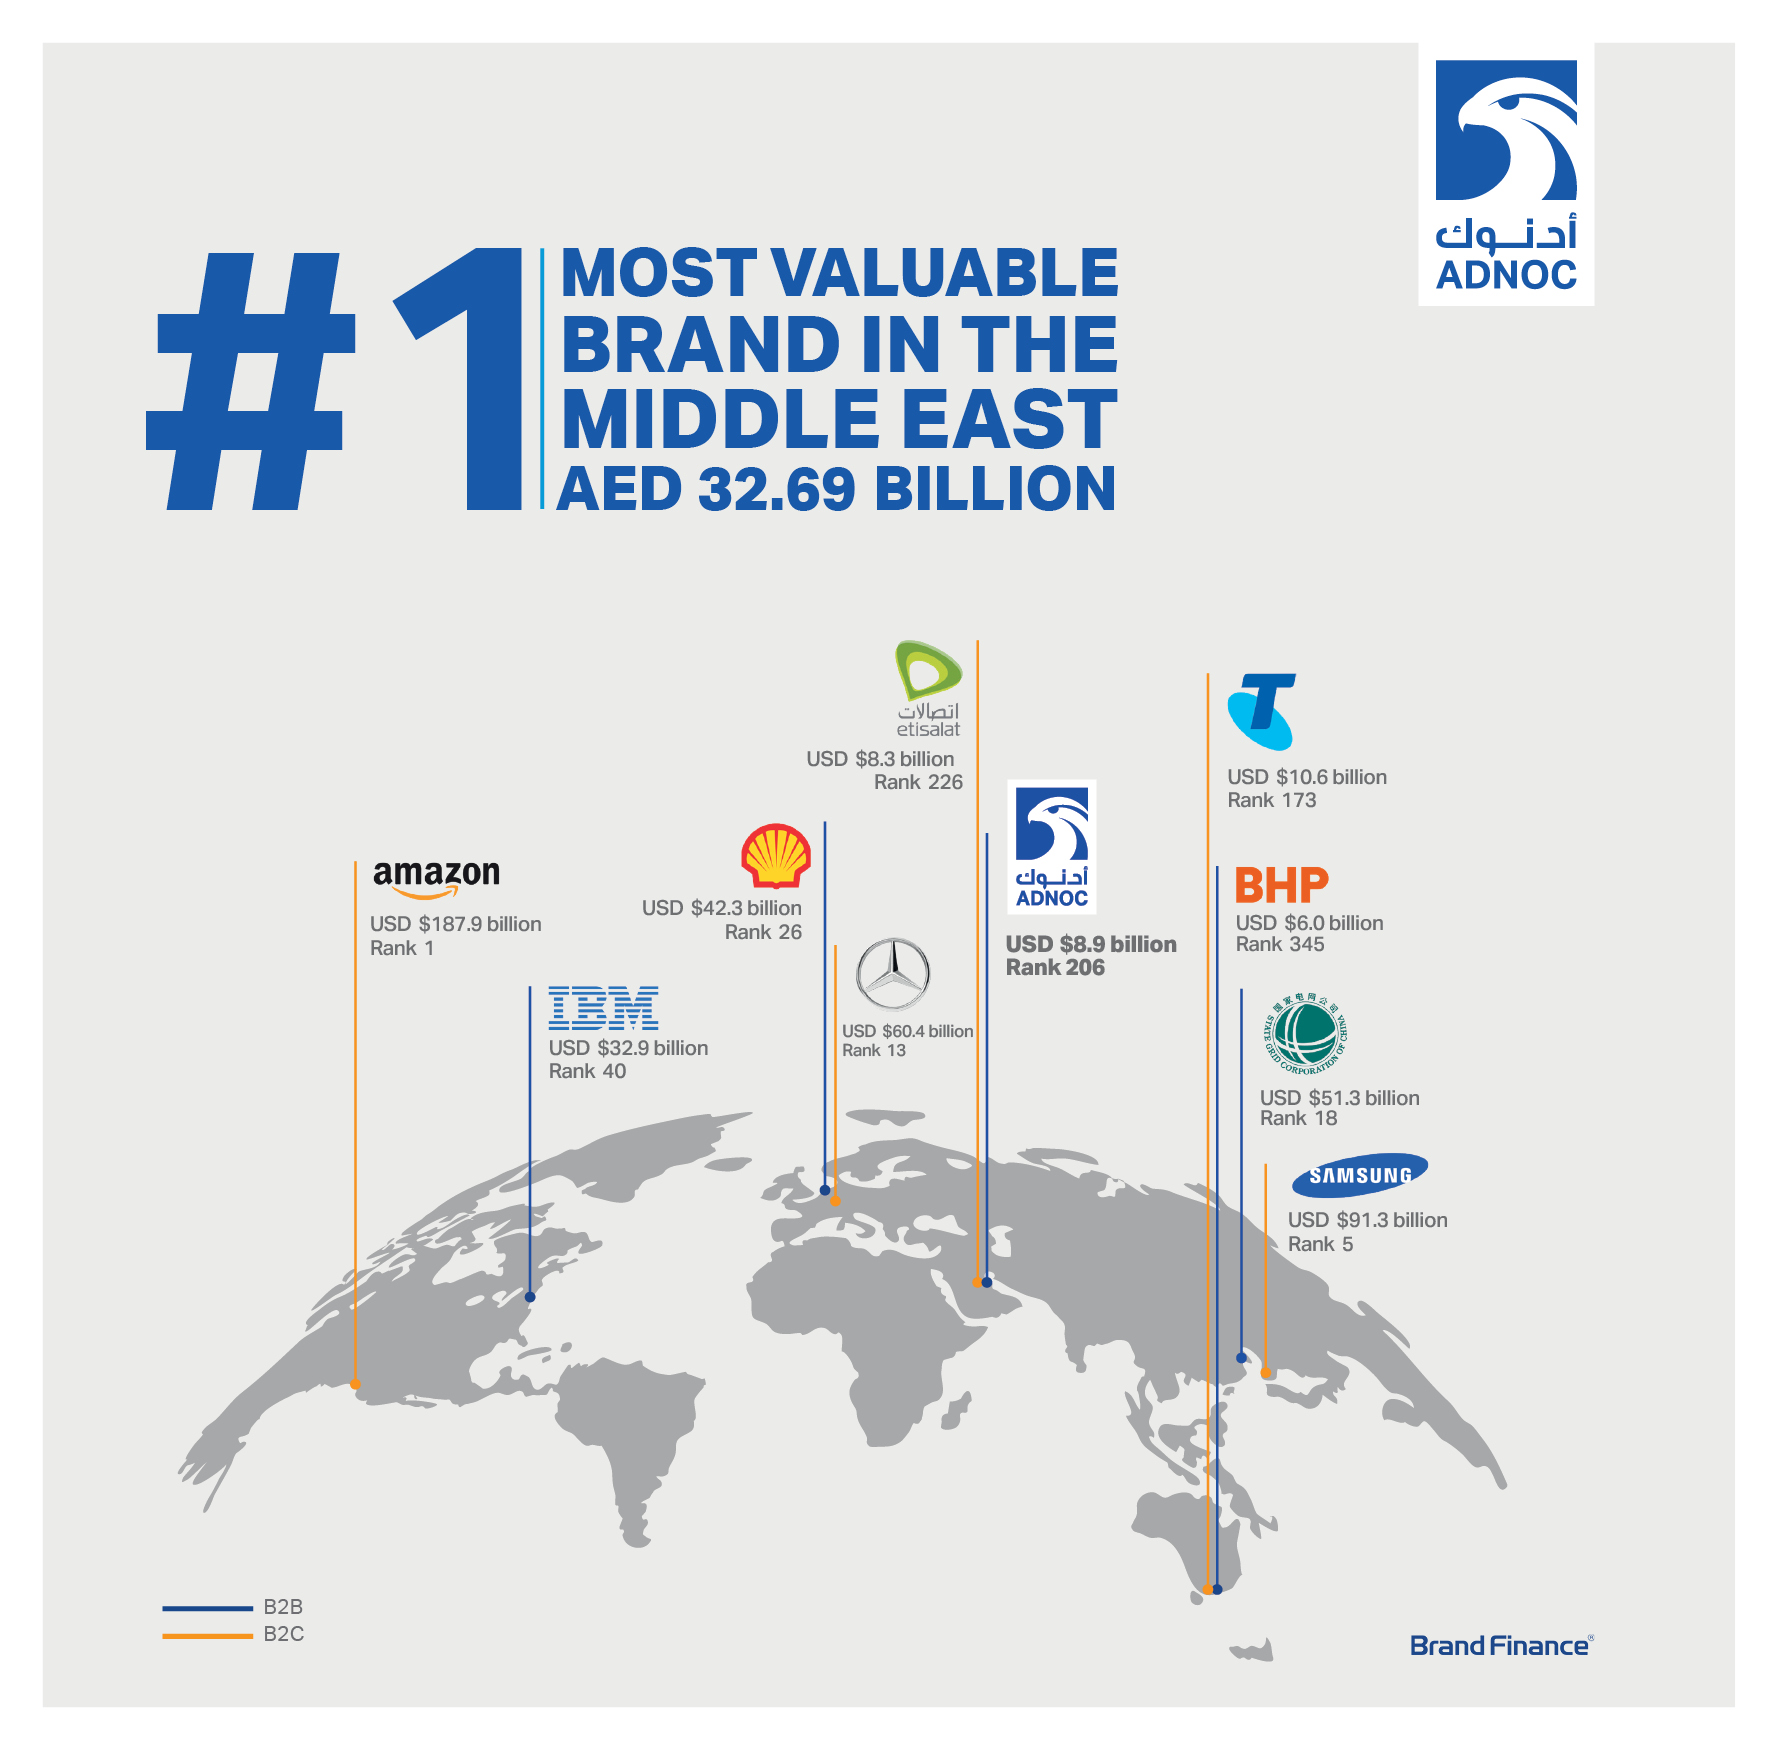 ADNOC Recognised Middle East's Most Valuable Brand | Day of